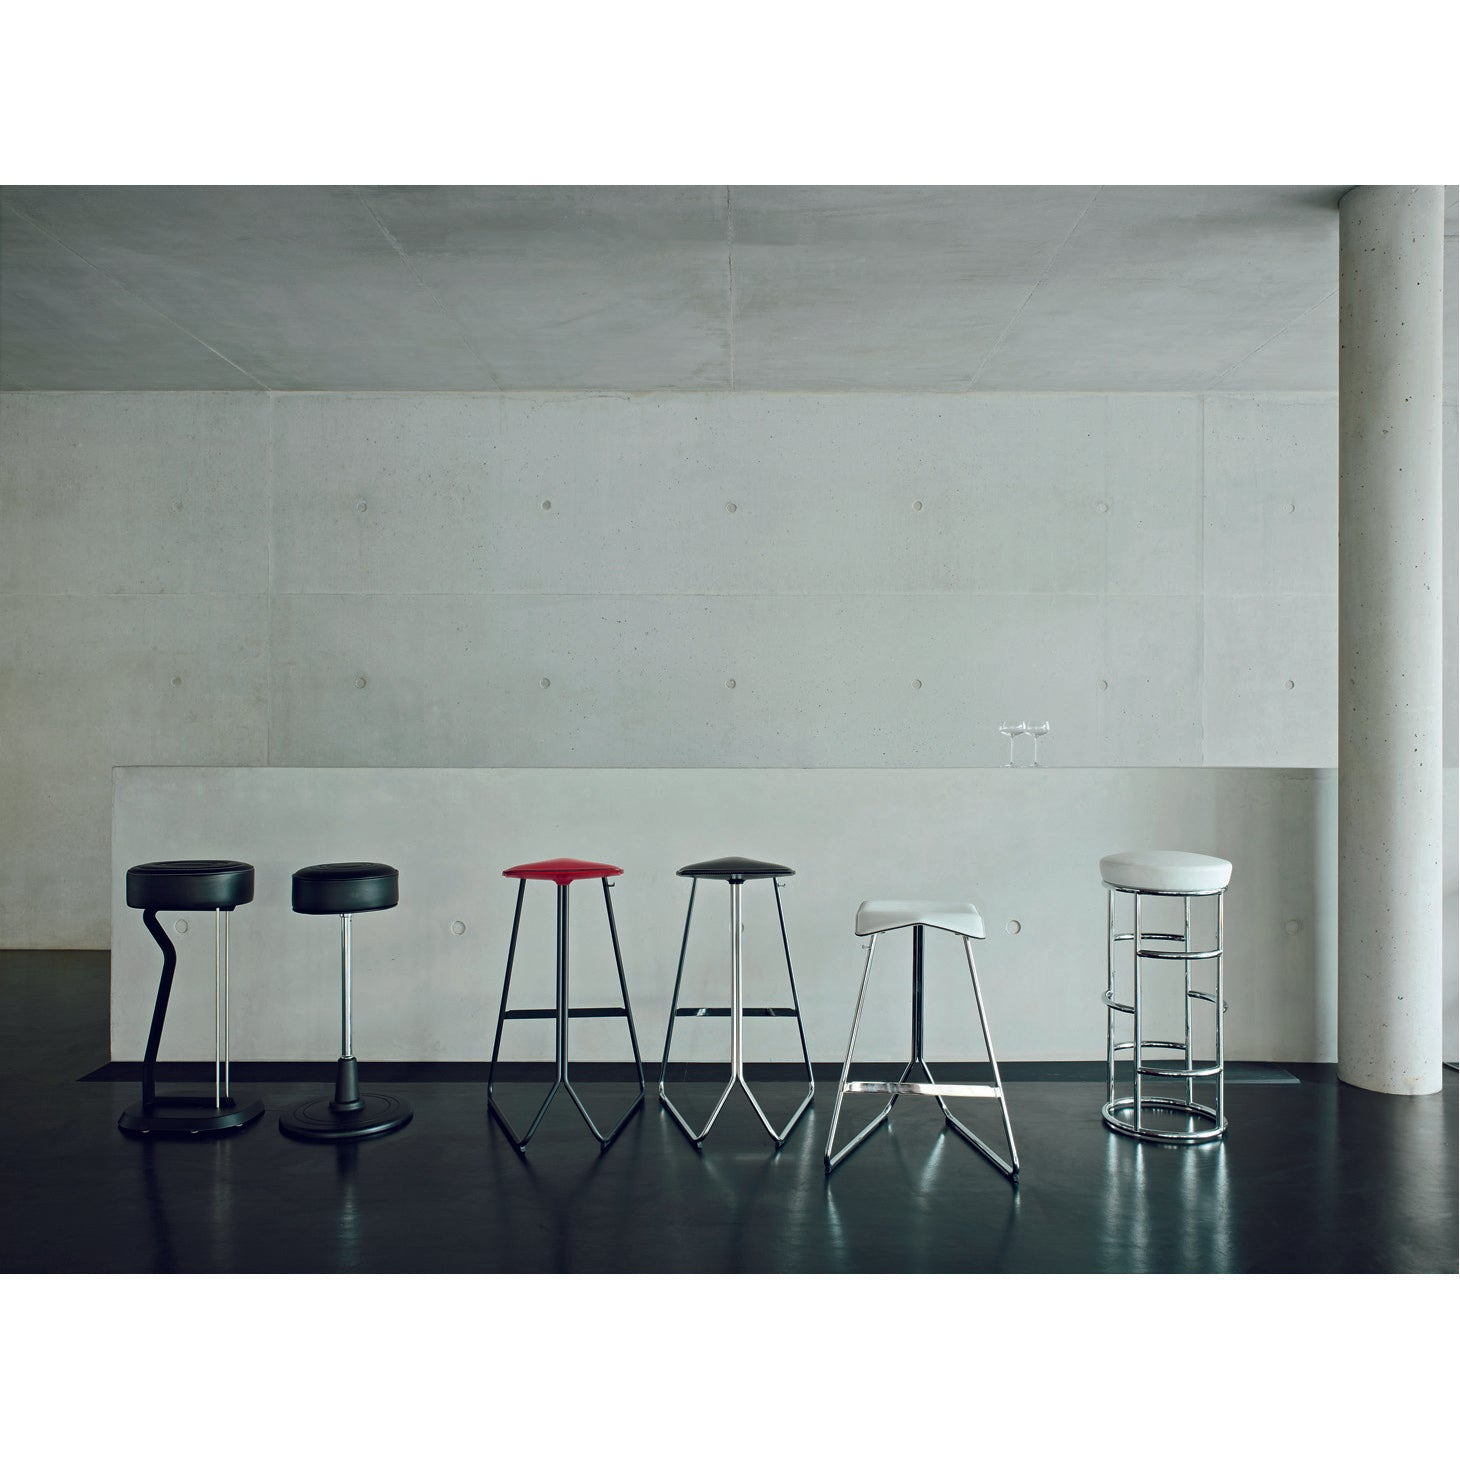 Seelen - Bar Stool 1 - Bar - Stool 2 - Triton - Satish